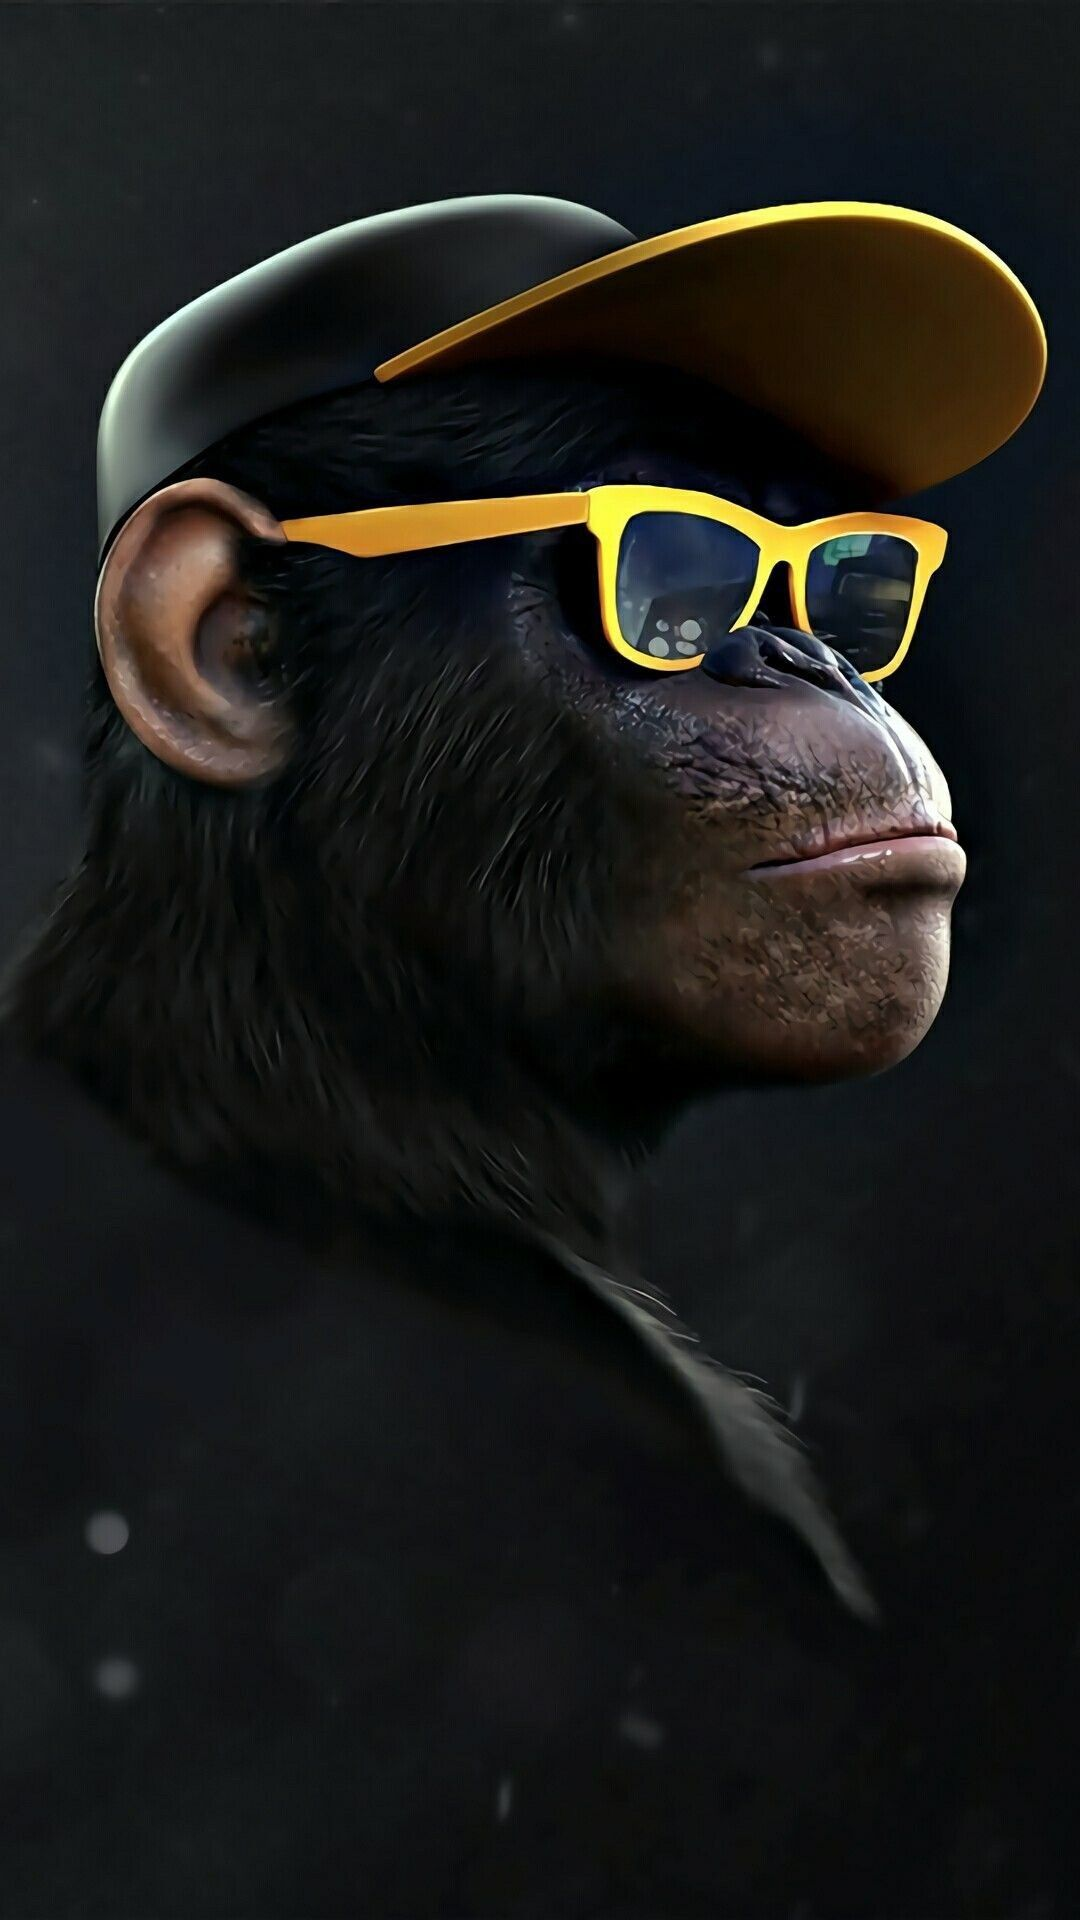 Best Funny Backgrounds  Res: 1080x1920, Funny Monkeys, Iphone Wallpapers, Phone Backgrounds, Work Today, Hanuman,  Primates, Art Illustrations, Swag, Cousins 2